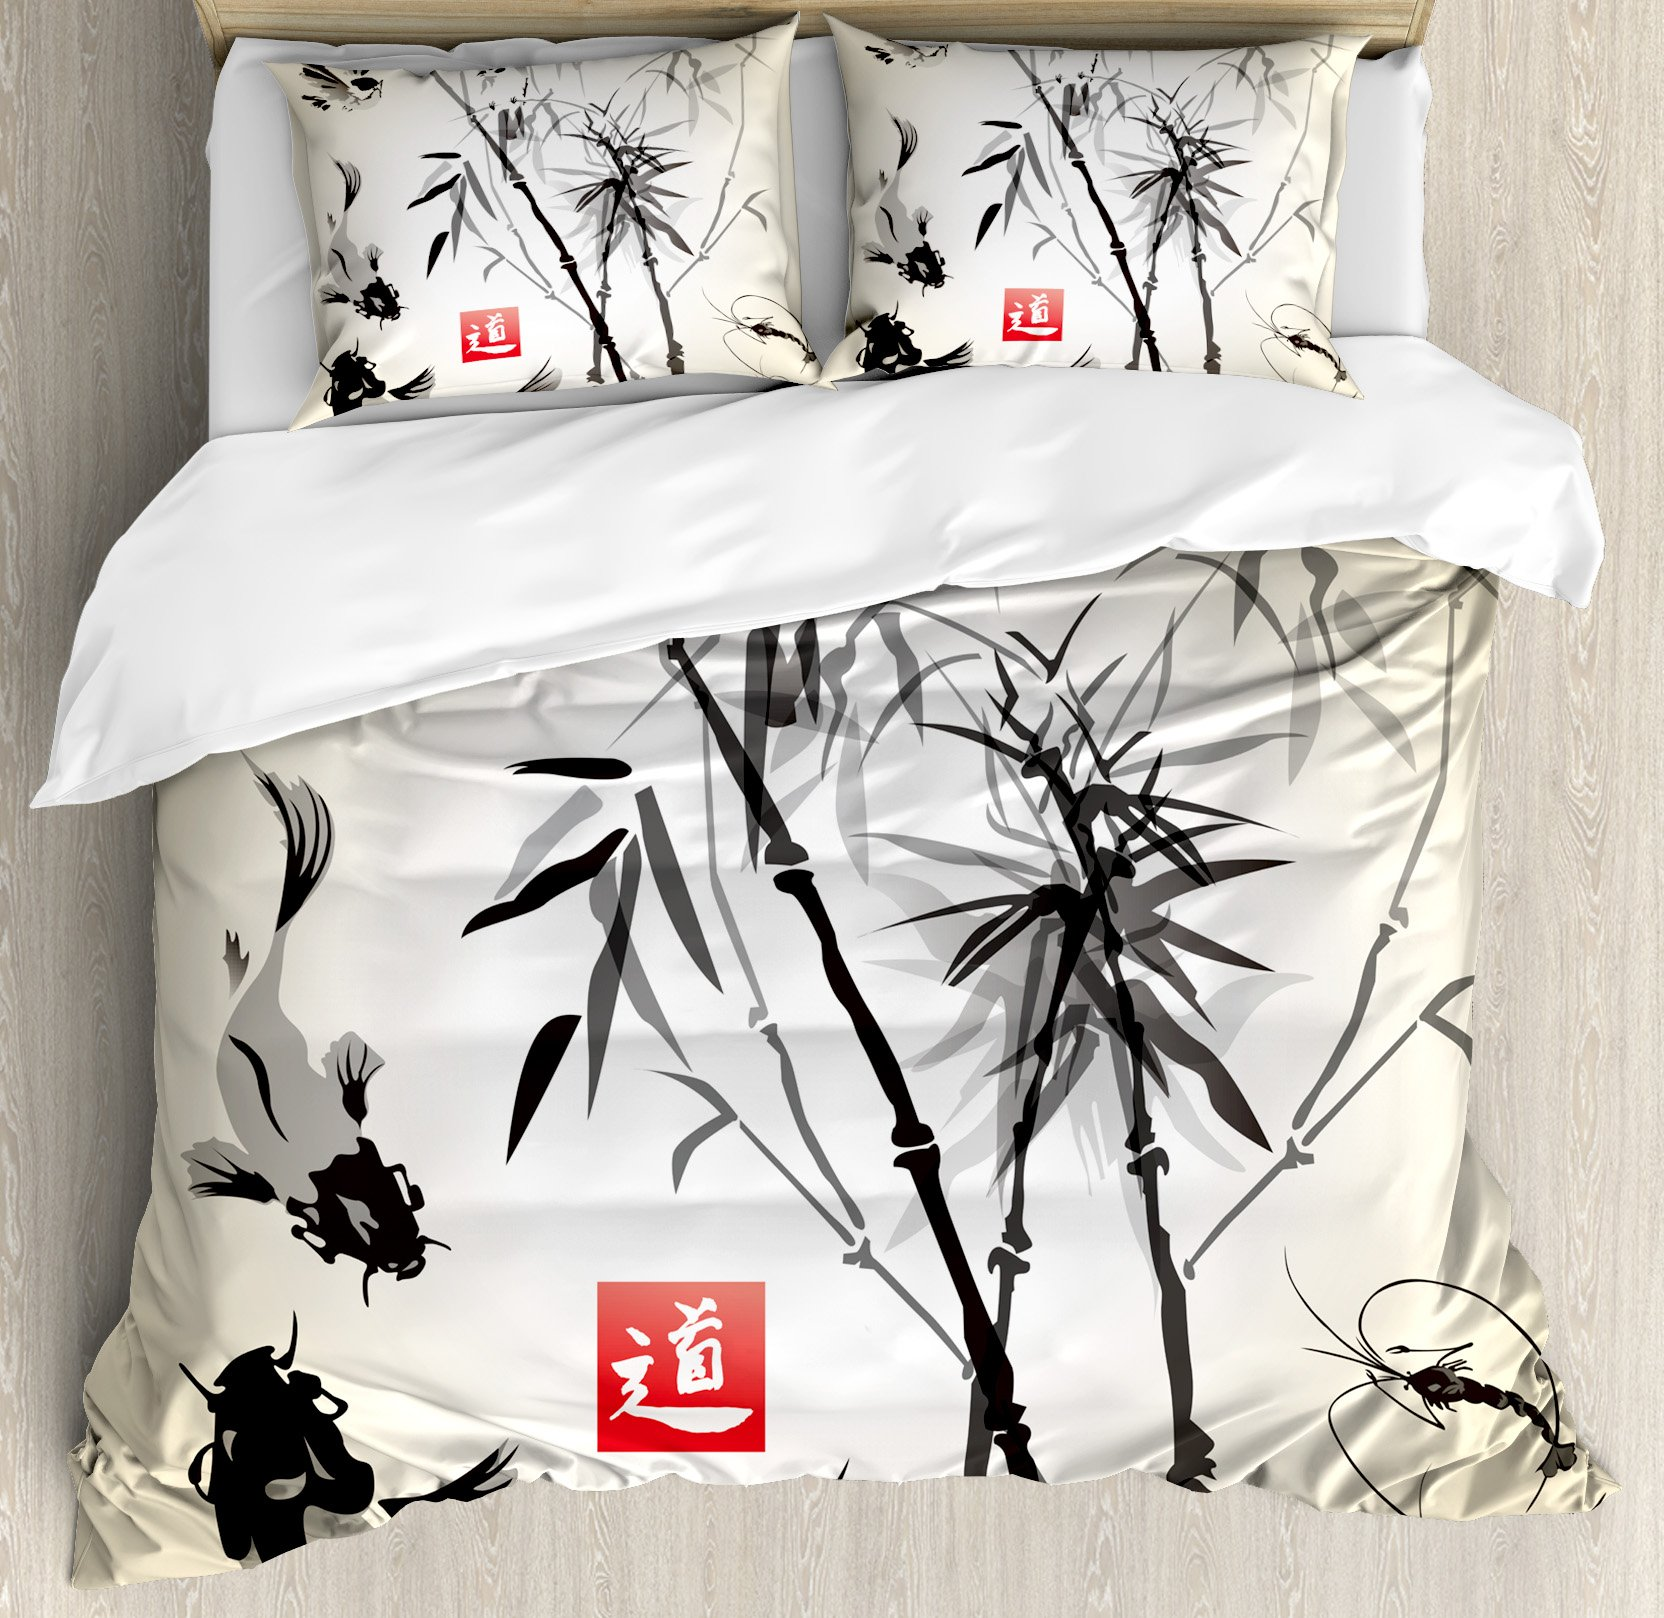 Ambesonne Japanese Duvet Cover Set King Size, Artistic Birds Fishes and Bamboo Leaves Abstract Painting Oriental Style, Decorative 3 Piece Bedding Set with 2 Pillow Shams, Black Gray Ivory